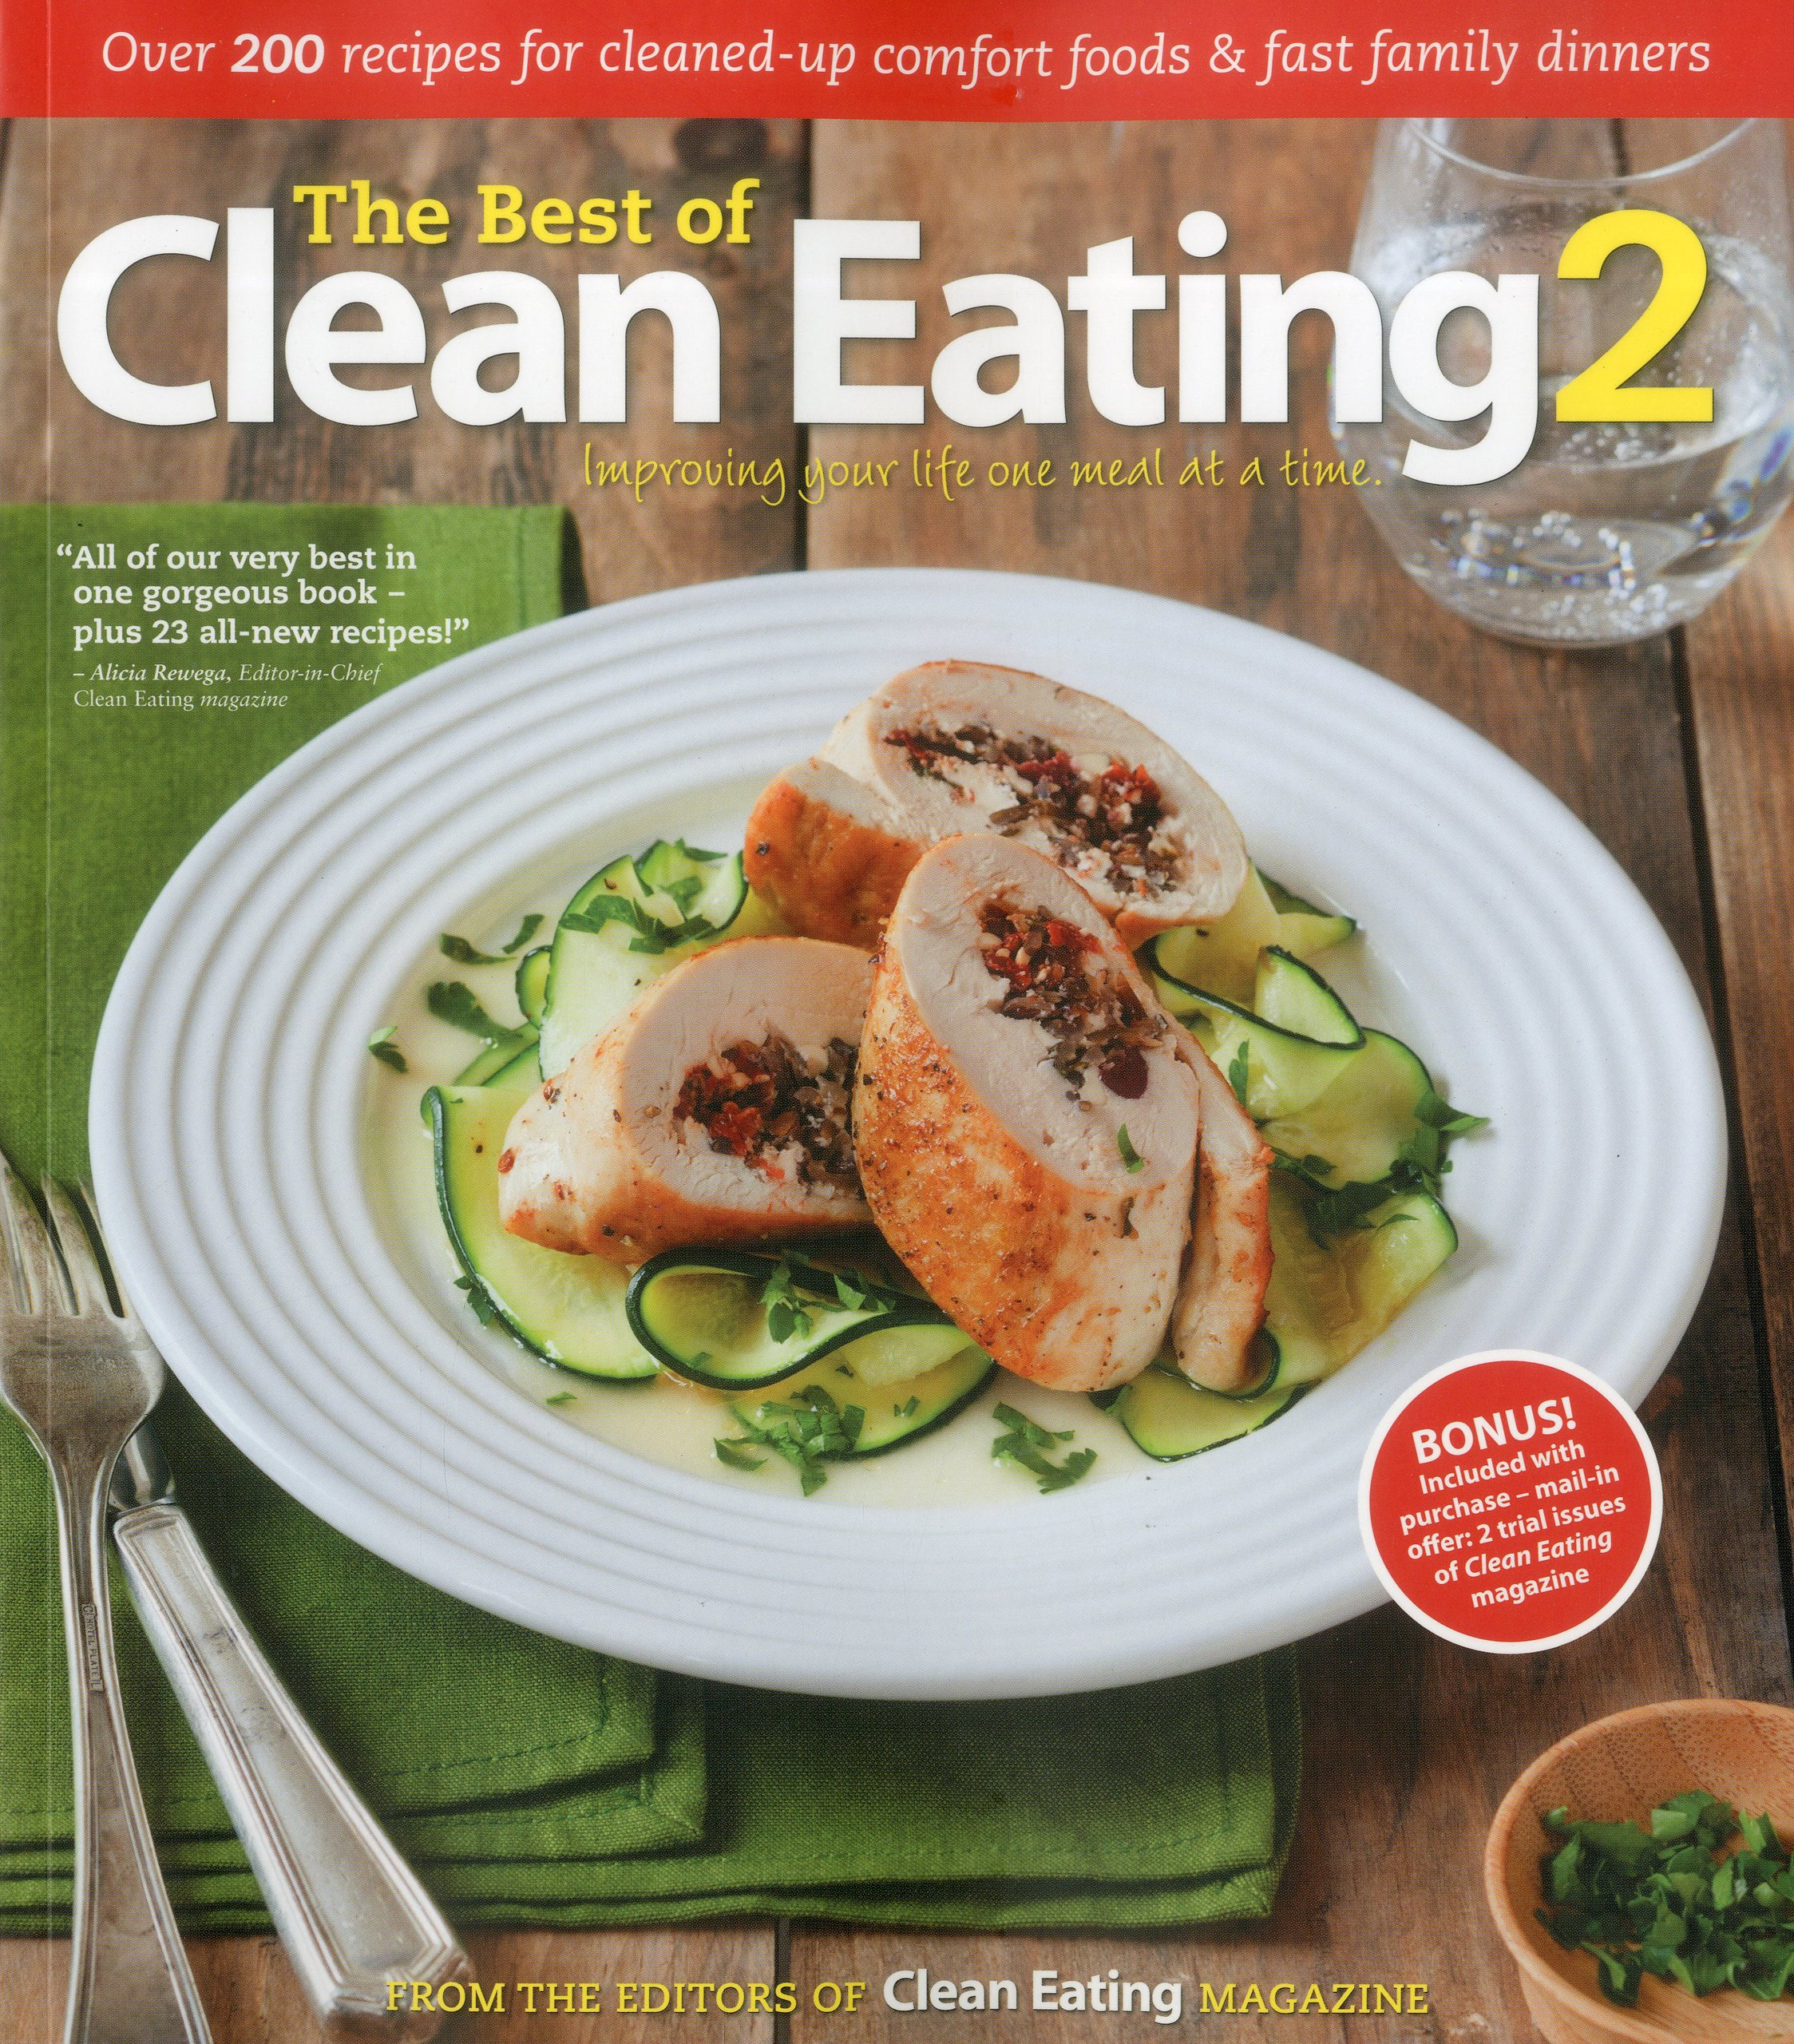 The best of clean eating 2 over 200 recipes with cleaned up the best of clean eating 2 over 200 recipes with cleaned up comfort foods and fast family dinners editors of clean eating magazine 9781552100974 forumfinder Gallery